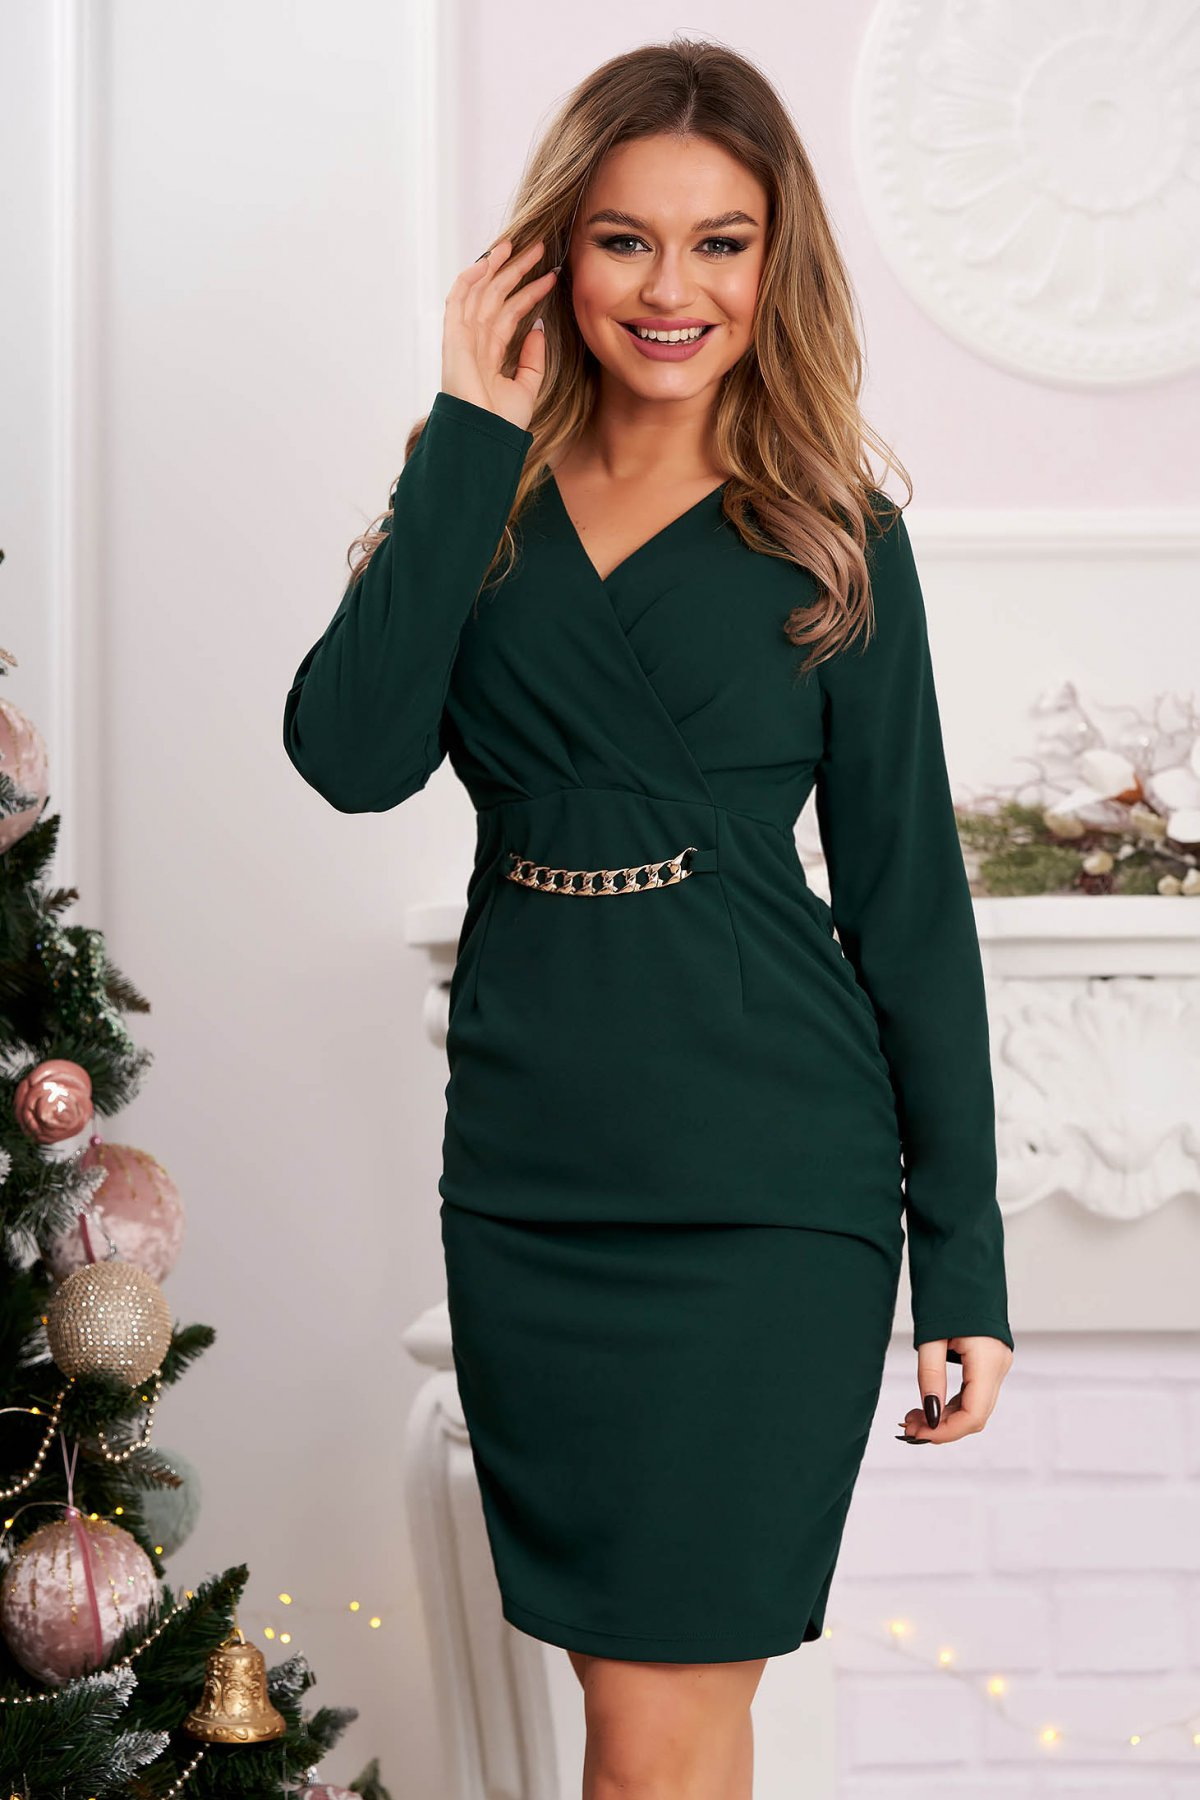 Rochie verde-inchis scurta de party tip creion dn material incretit in laterale